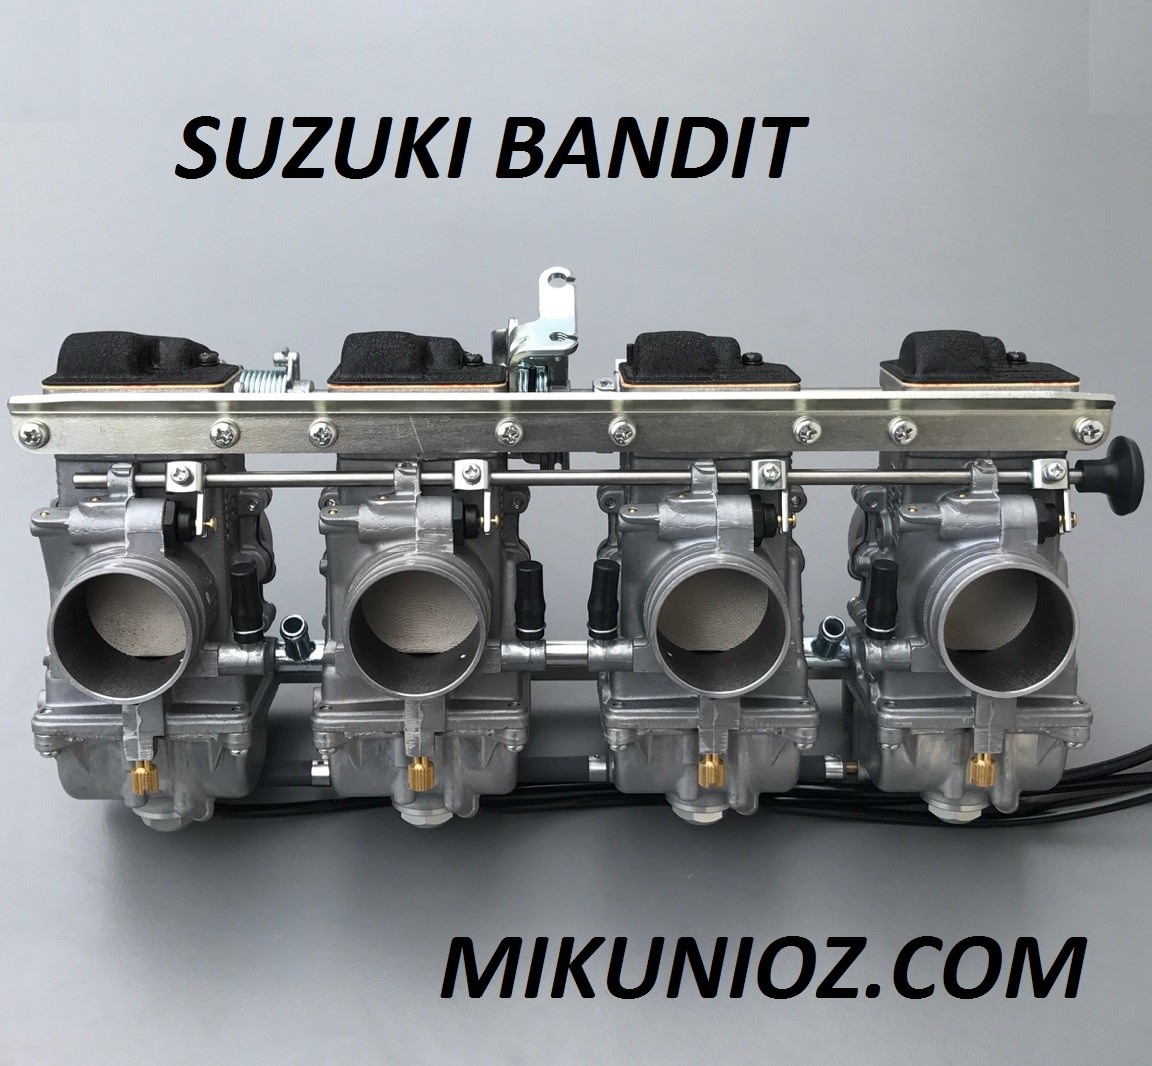 mikuni rs38 carb kit suzuki bandit air oil cooled mikunioz. Black Bedroom Furniture Sets. Home Design Ideas